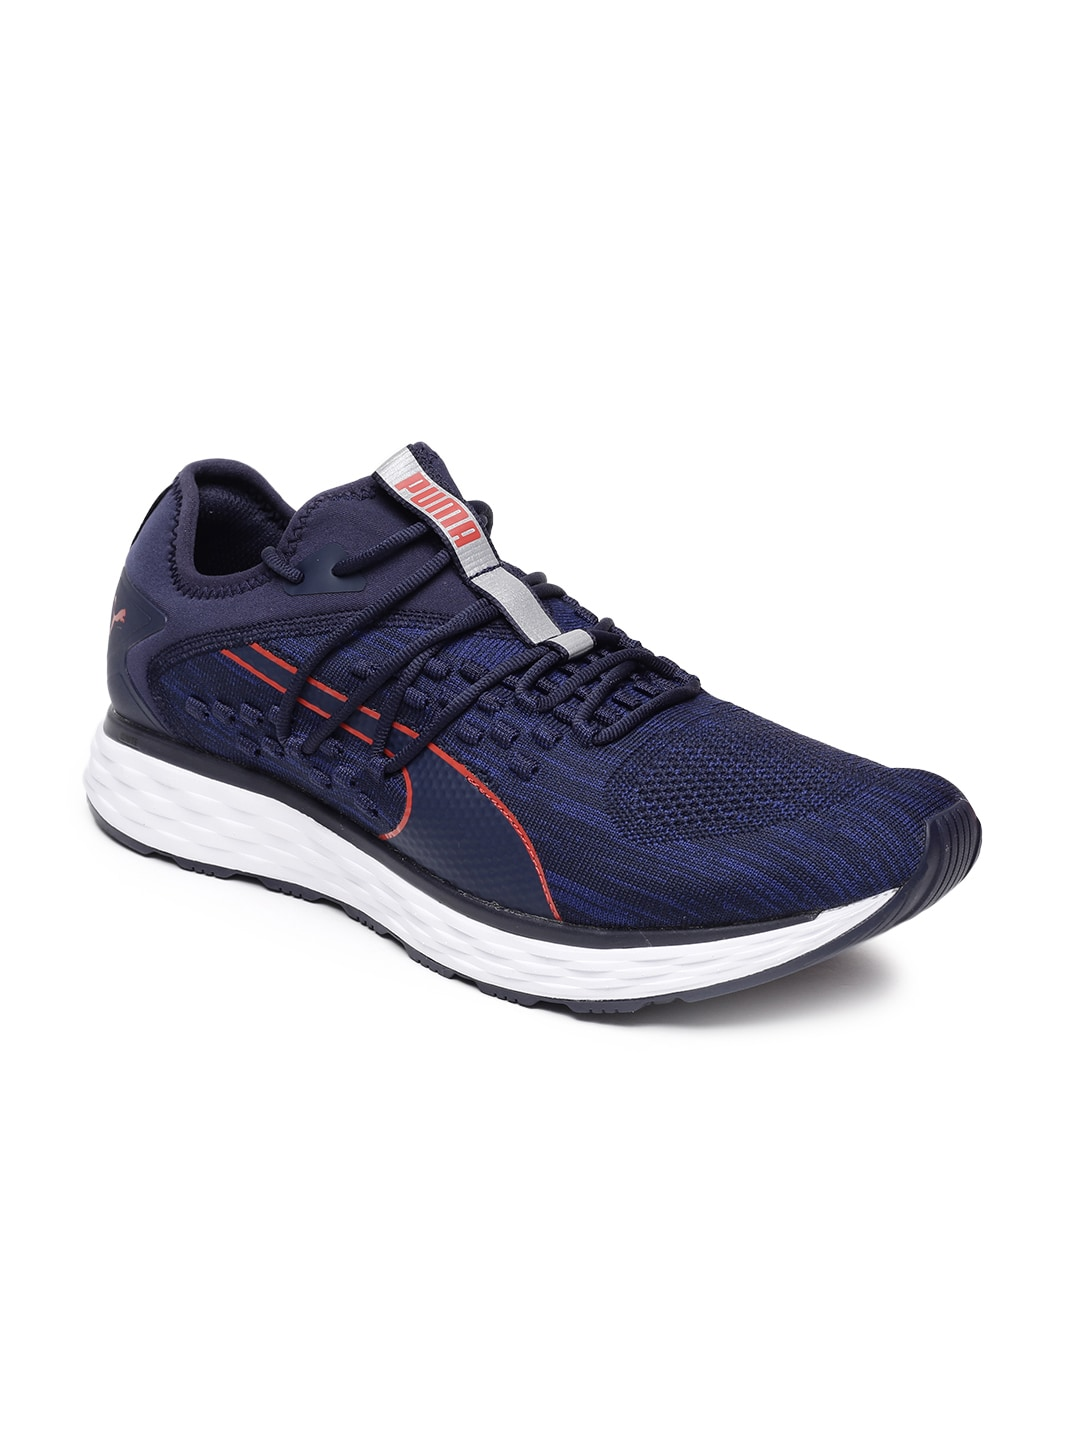 Buy Puma Men Blue IGNITE Ultimate 2 Running Shoes - Sports Shoes for ... 70fbbbe49